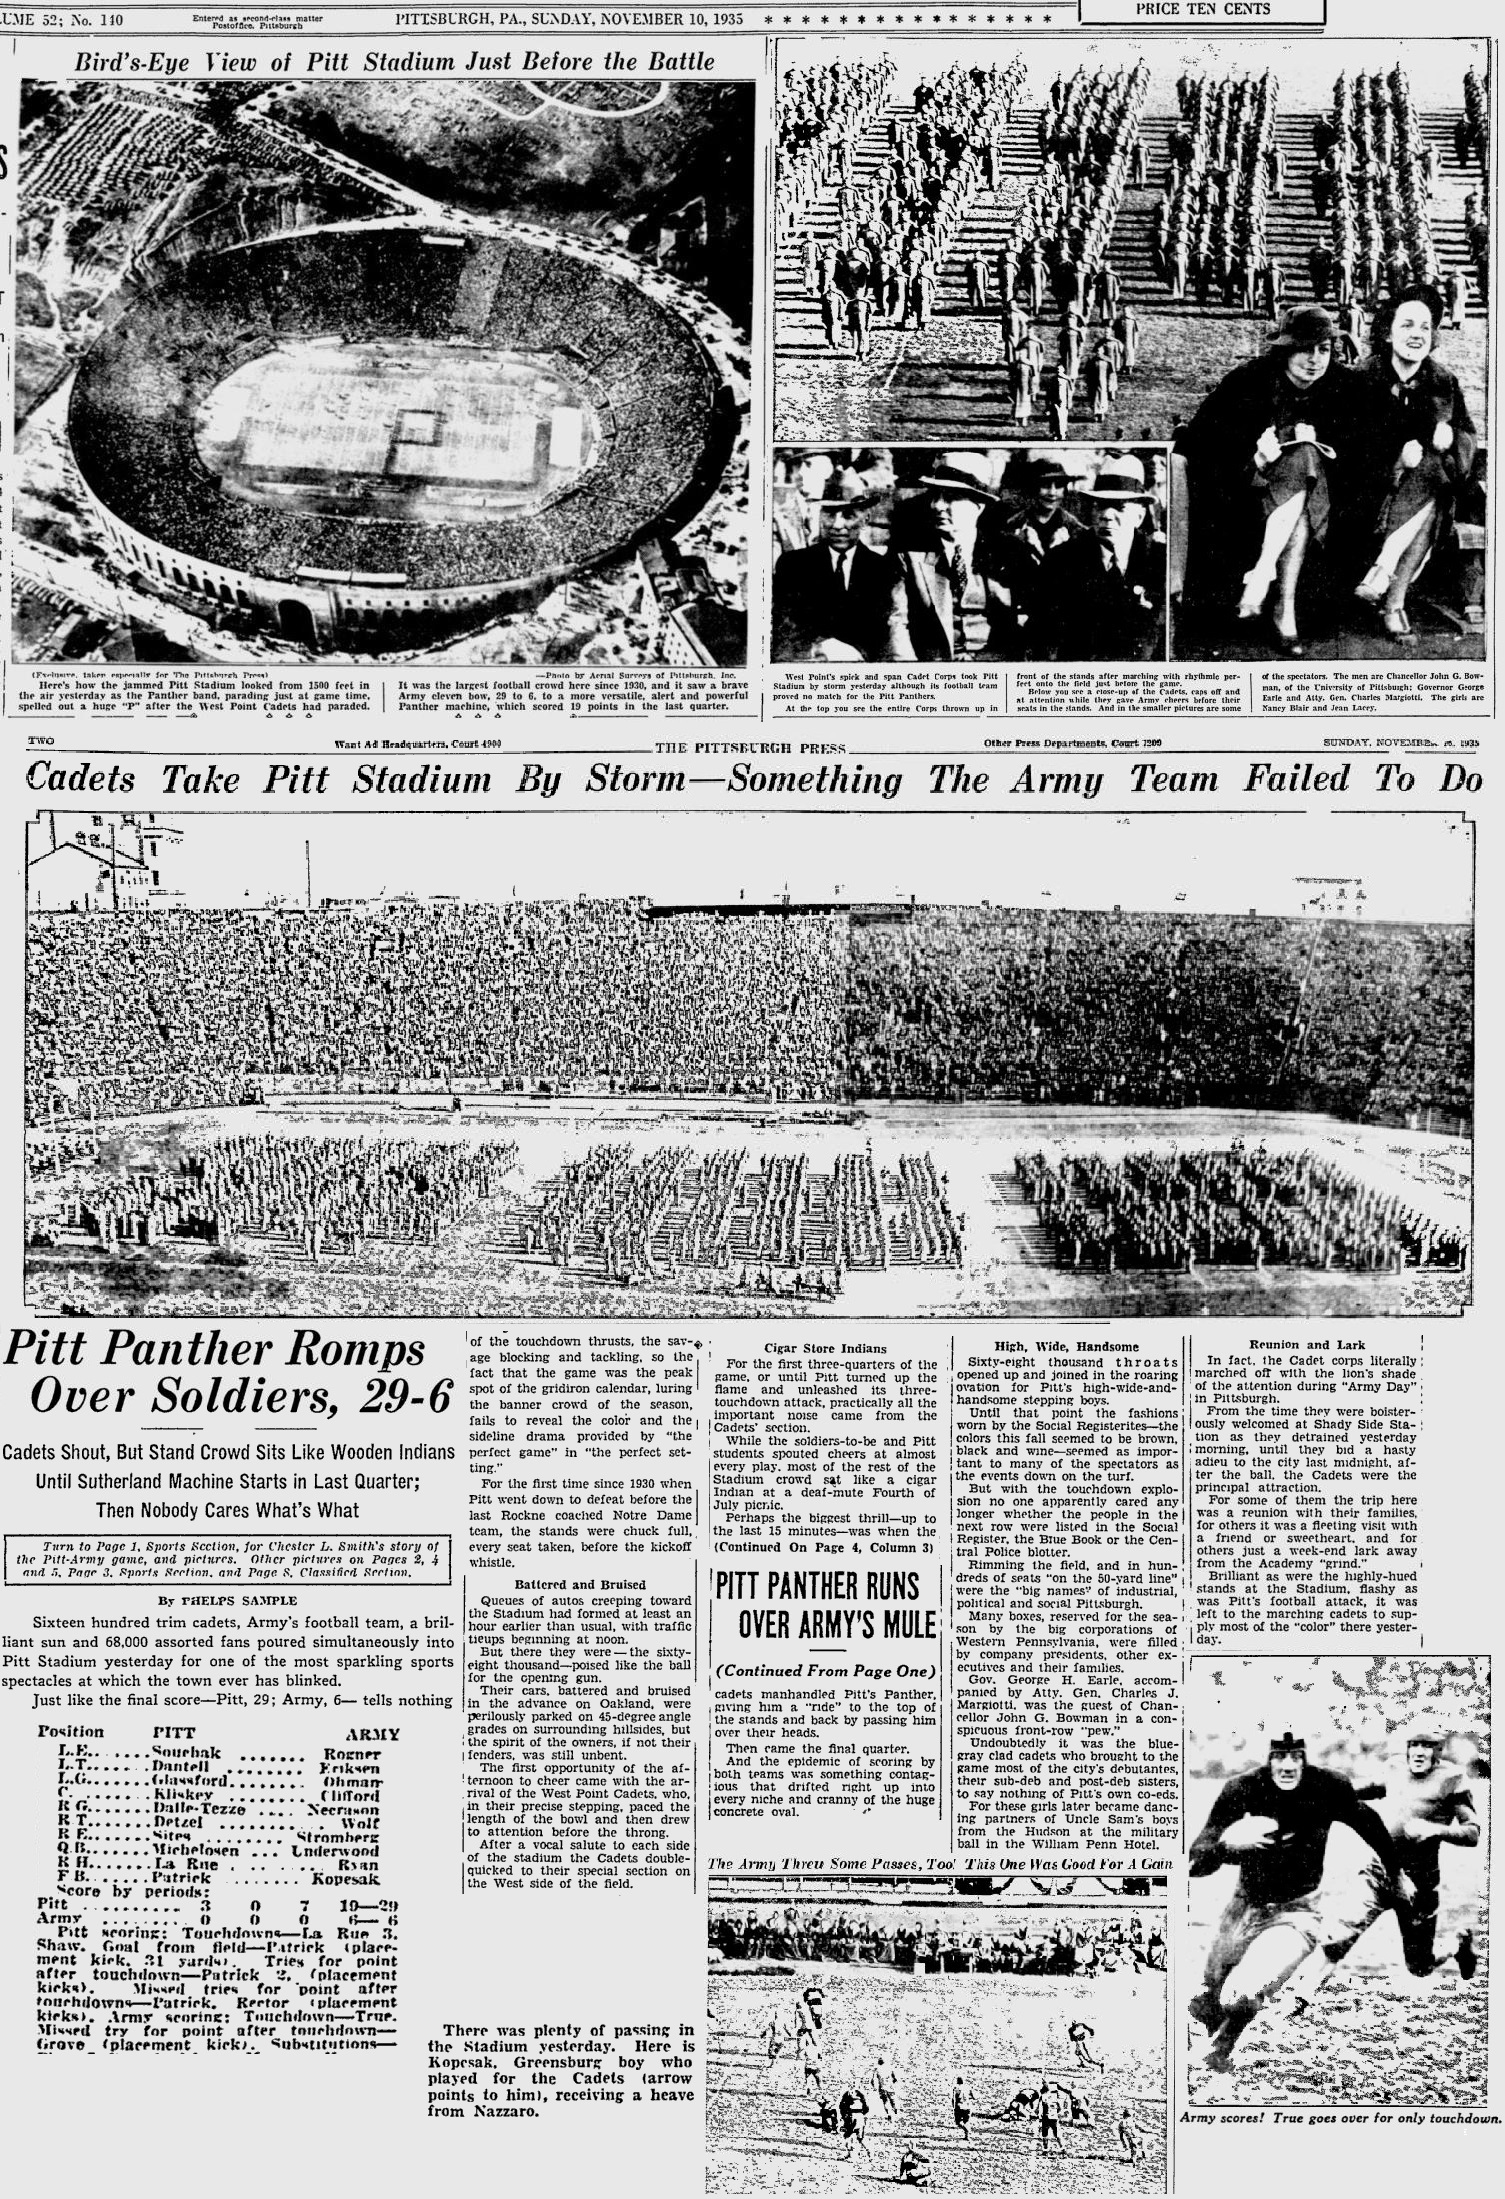 ArmyFB_1935_vsPitt_Stadium-CorpsofCadets_PittsburghPress_Oct161932